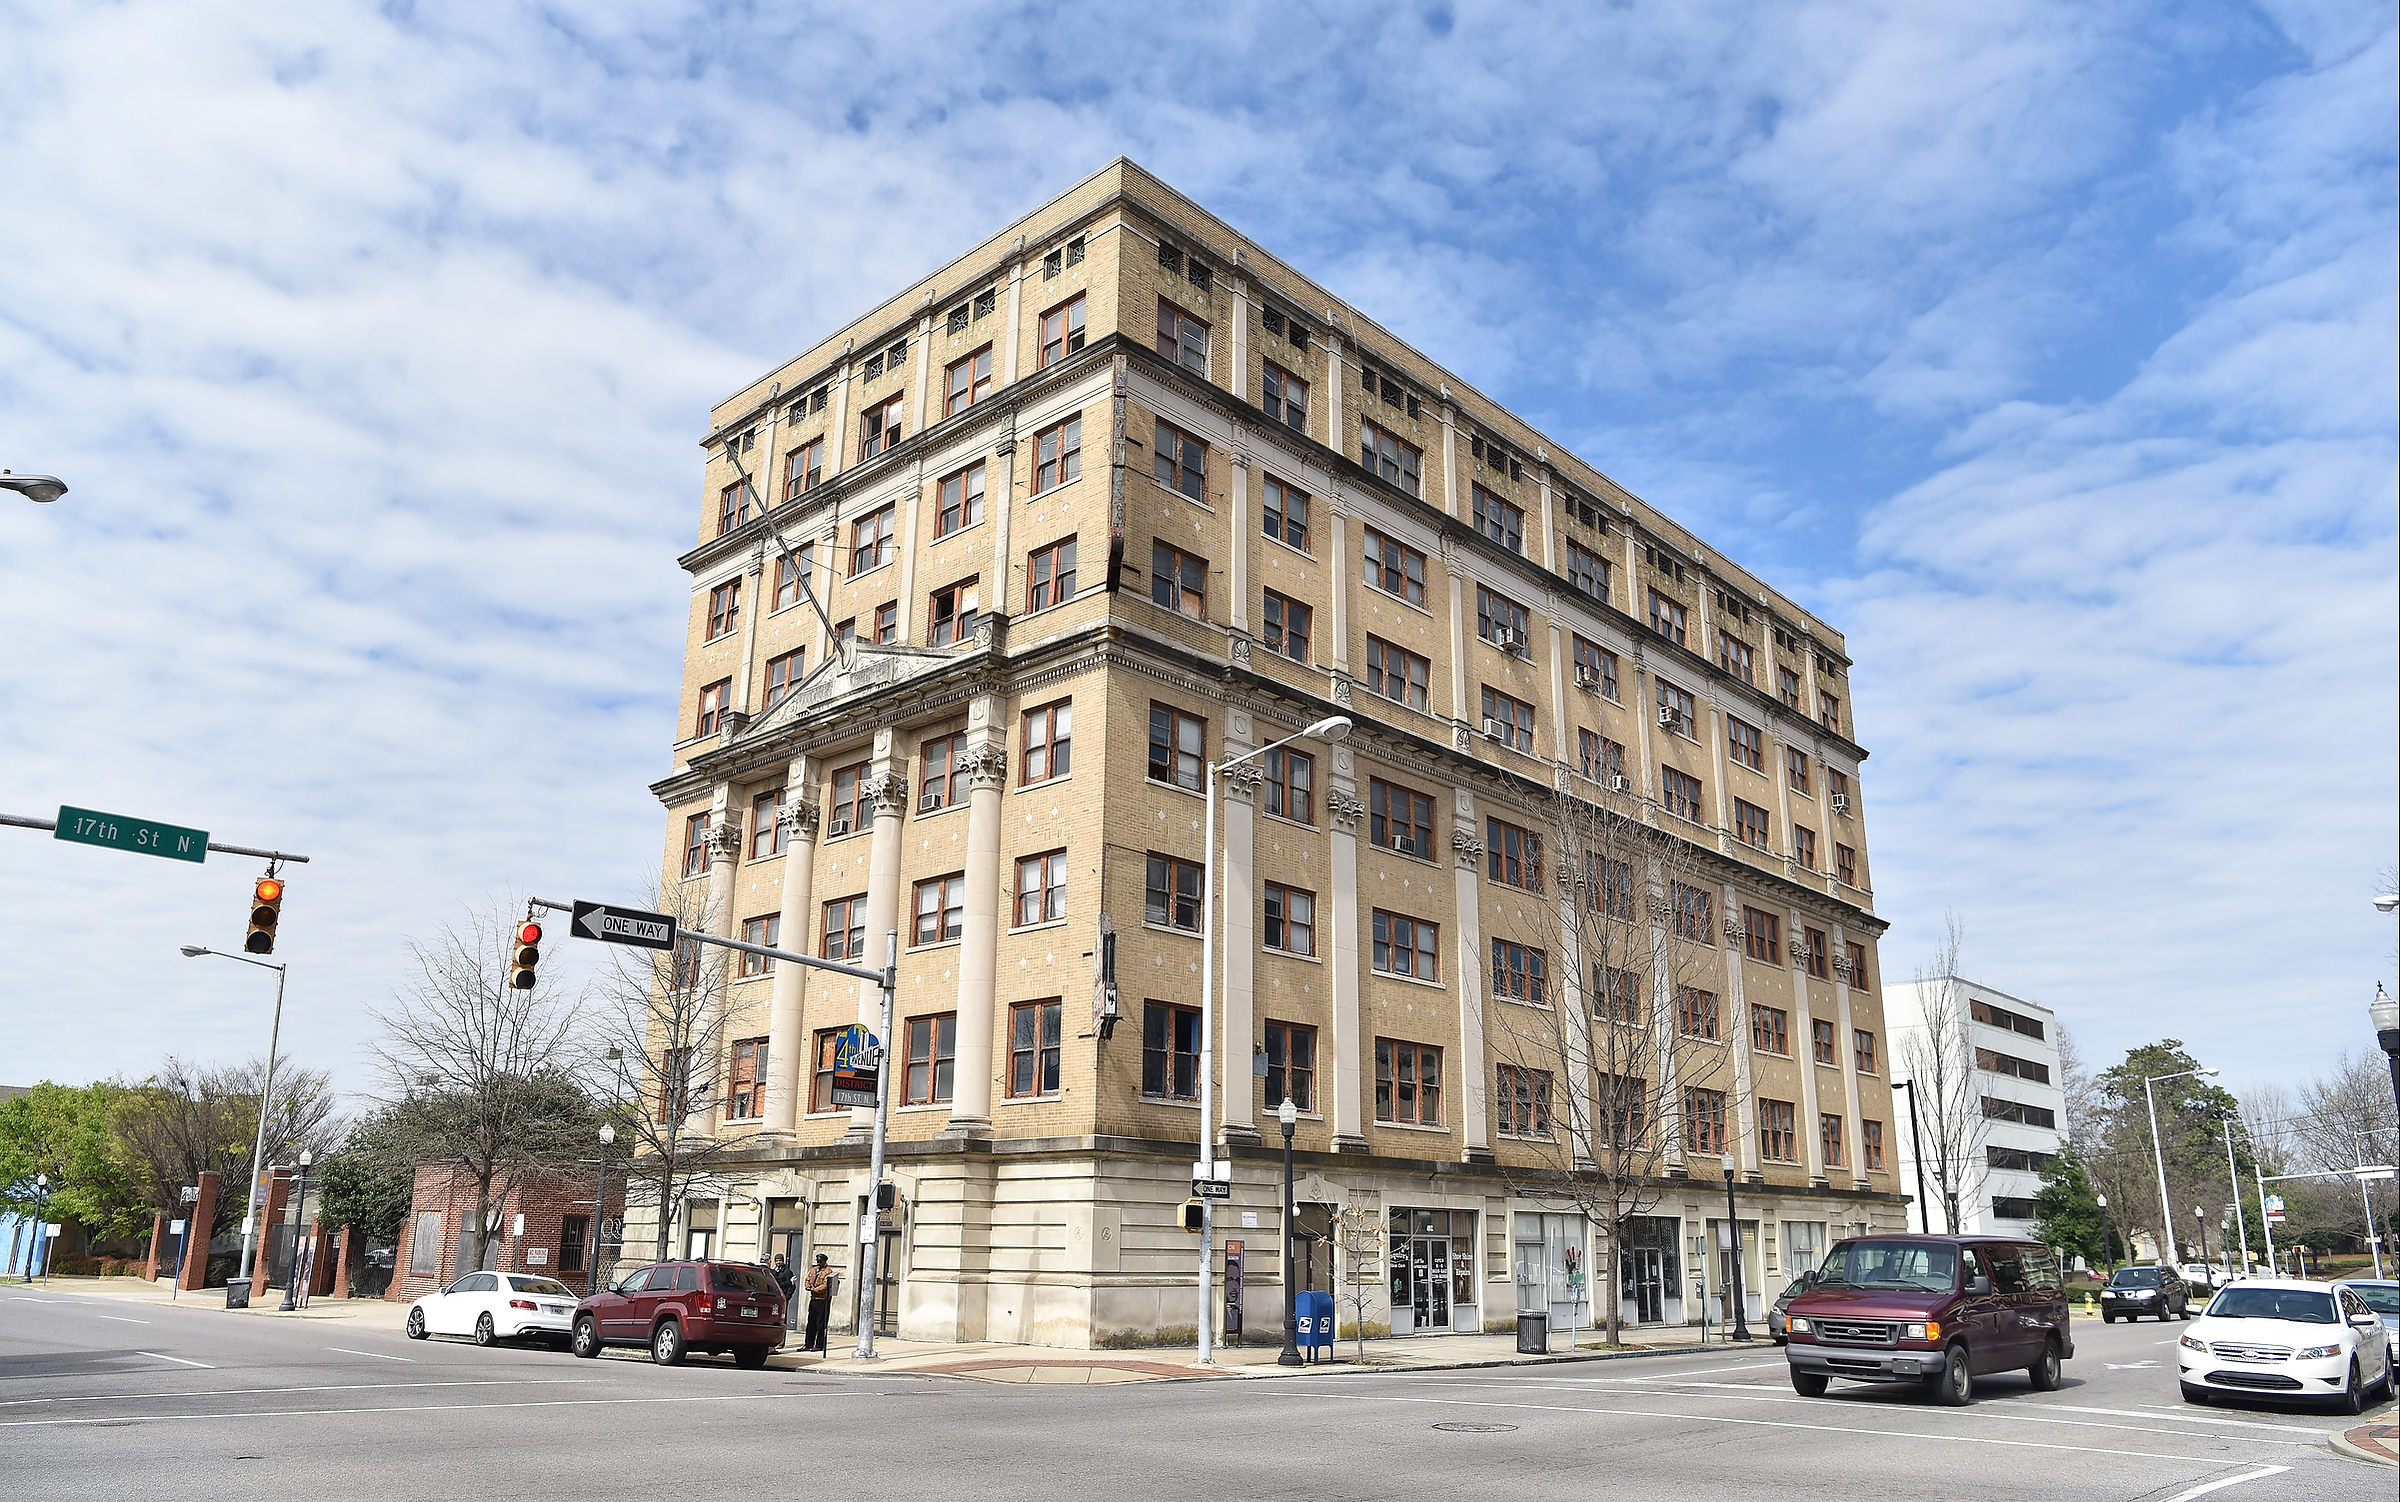 Building History: Inside the closed Masonic Temple in